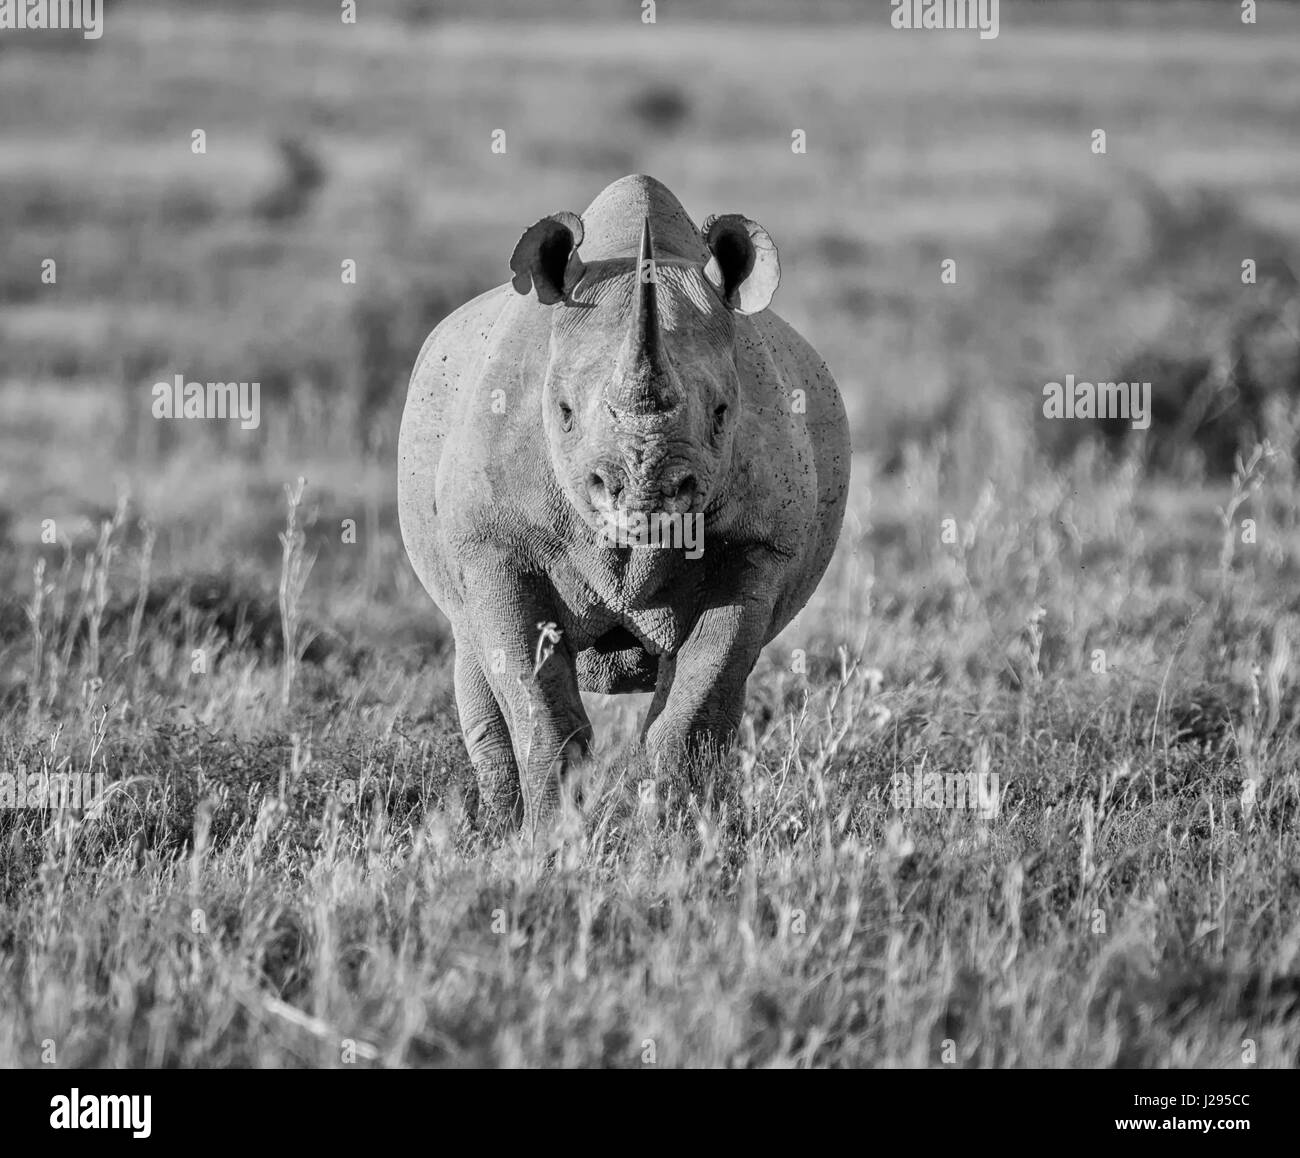 A lone adult Black Rhinoceros in grassland in Southern Africa - Stock Image